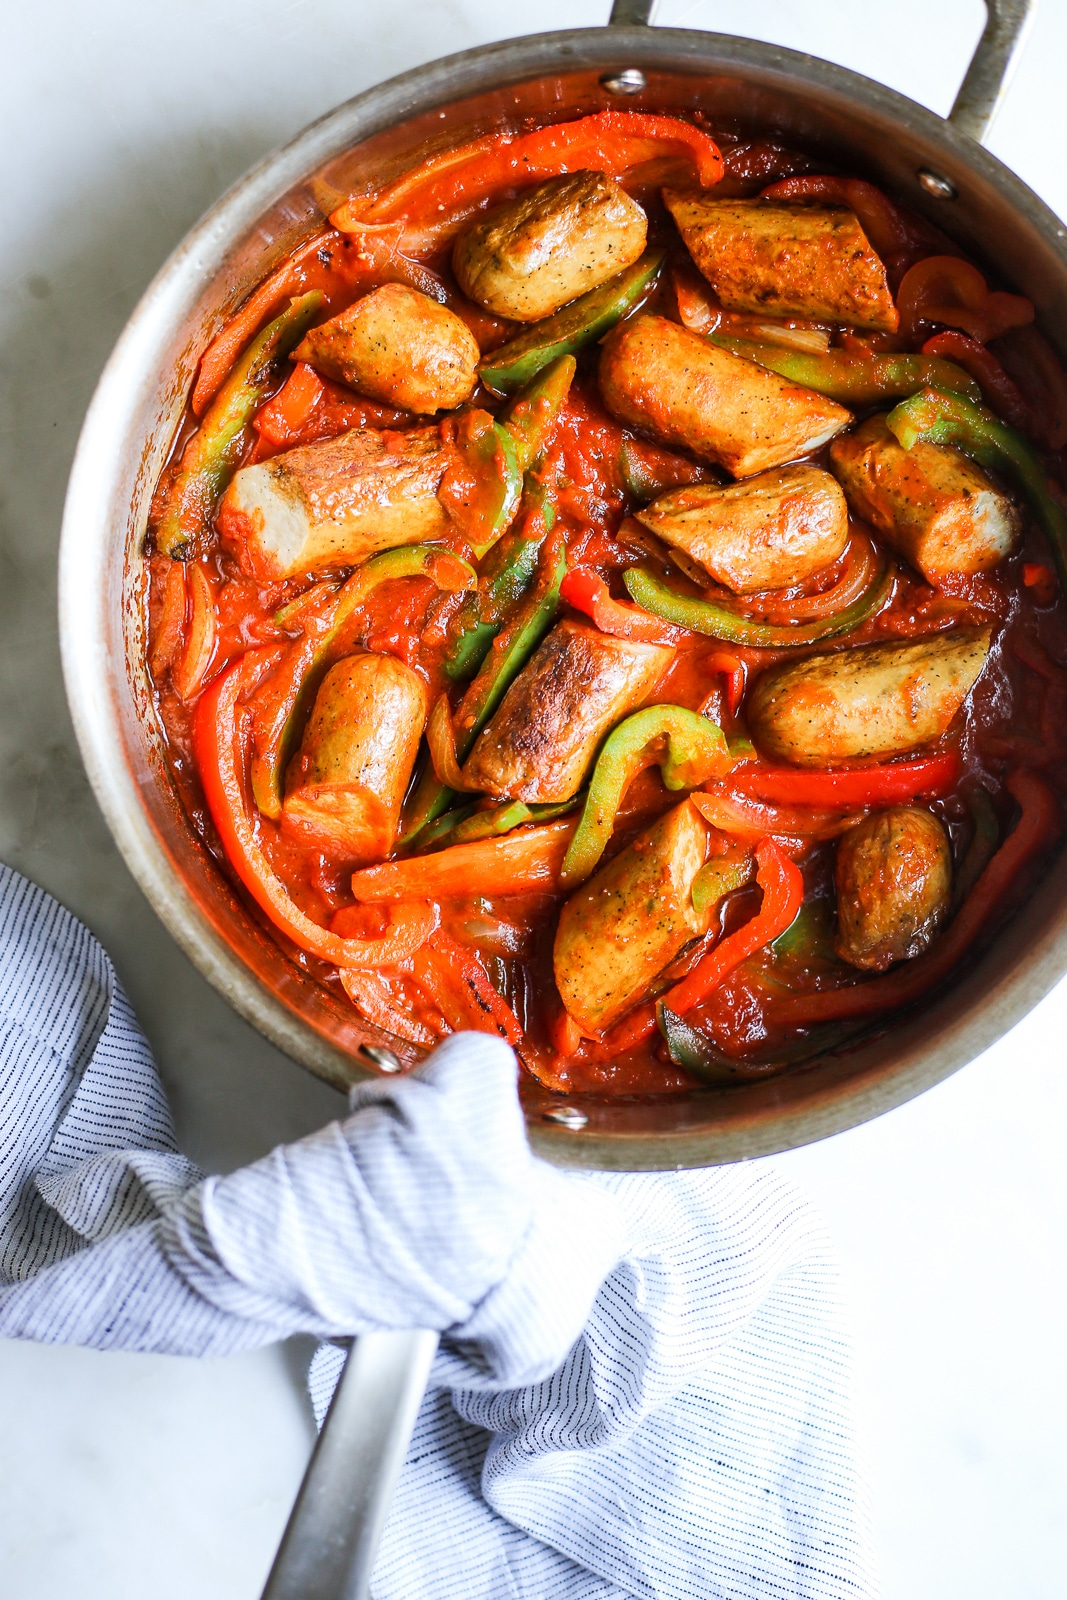 A red meal in a skillet